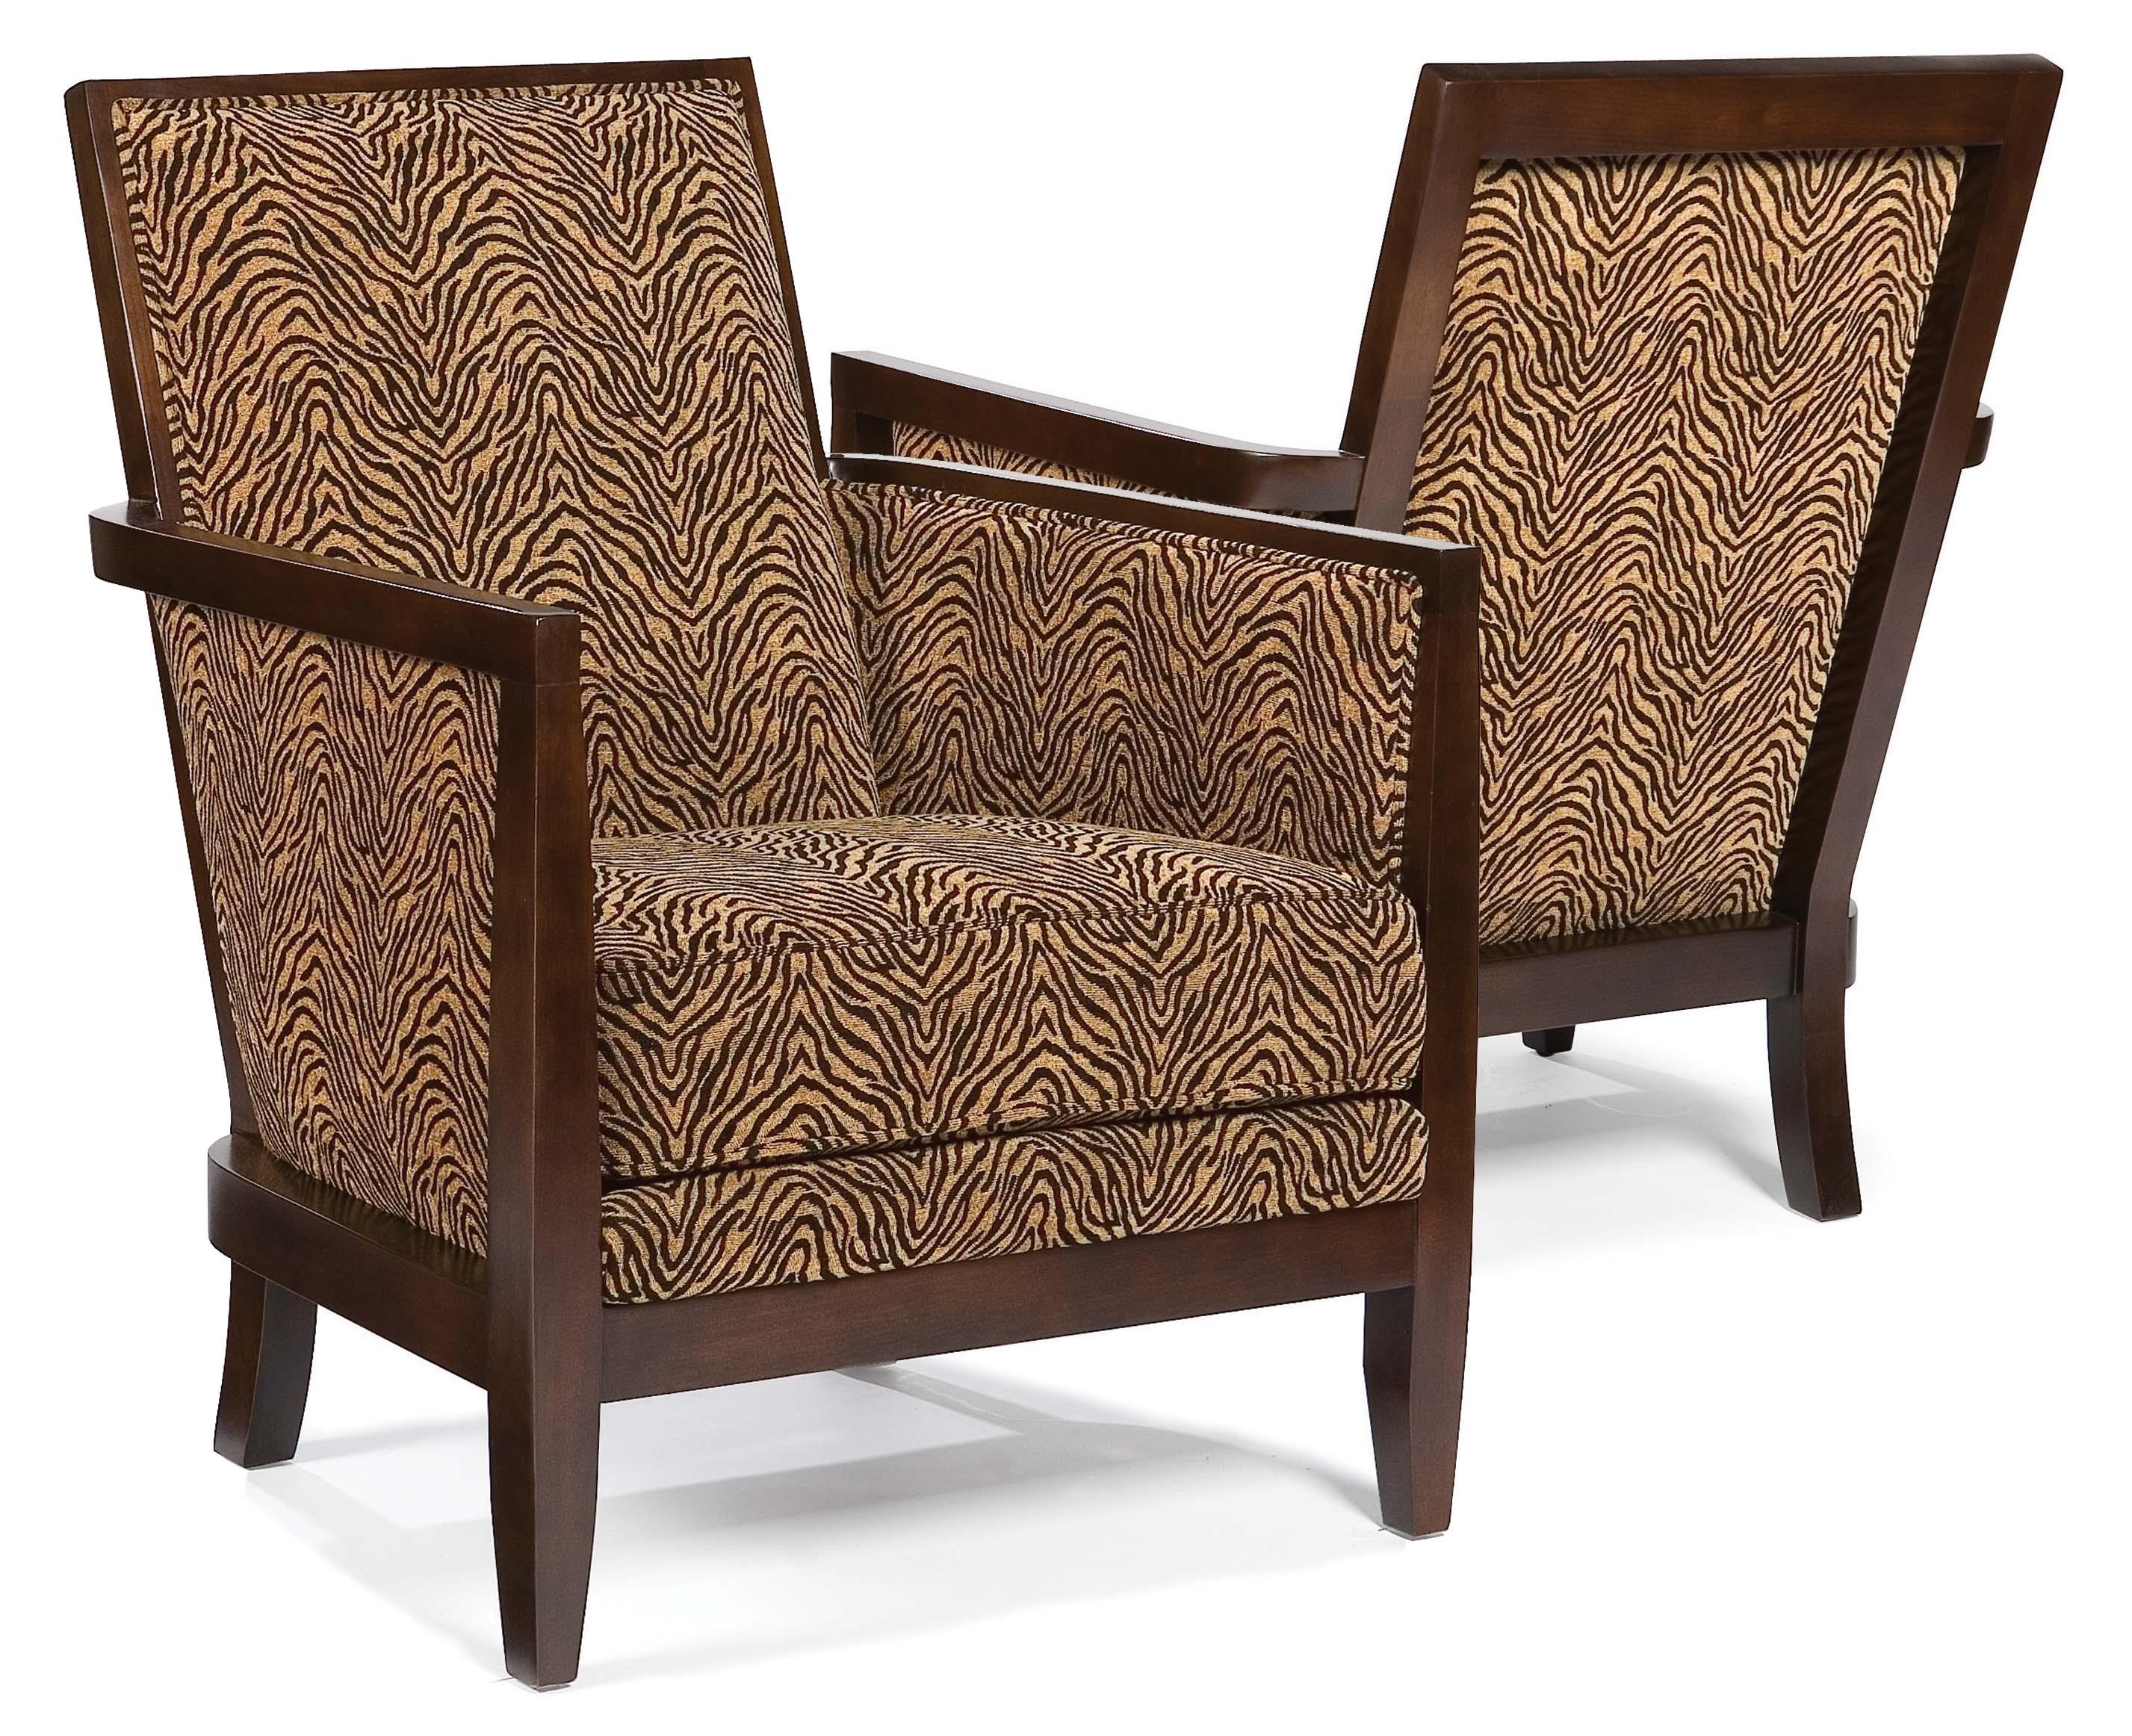 Exposed Wood Furniture ~ Fairfield chairs contemporary geometric exposed wood chair